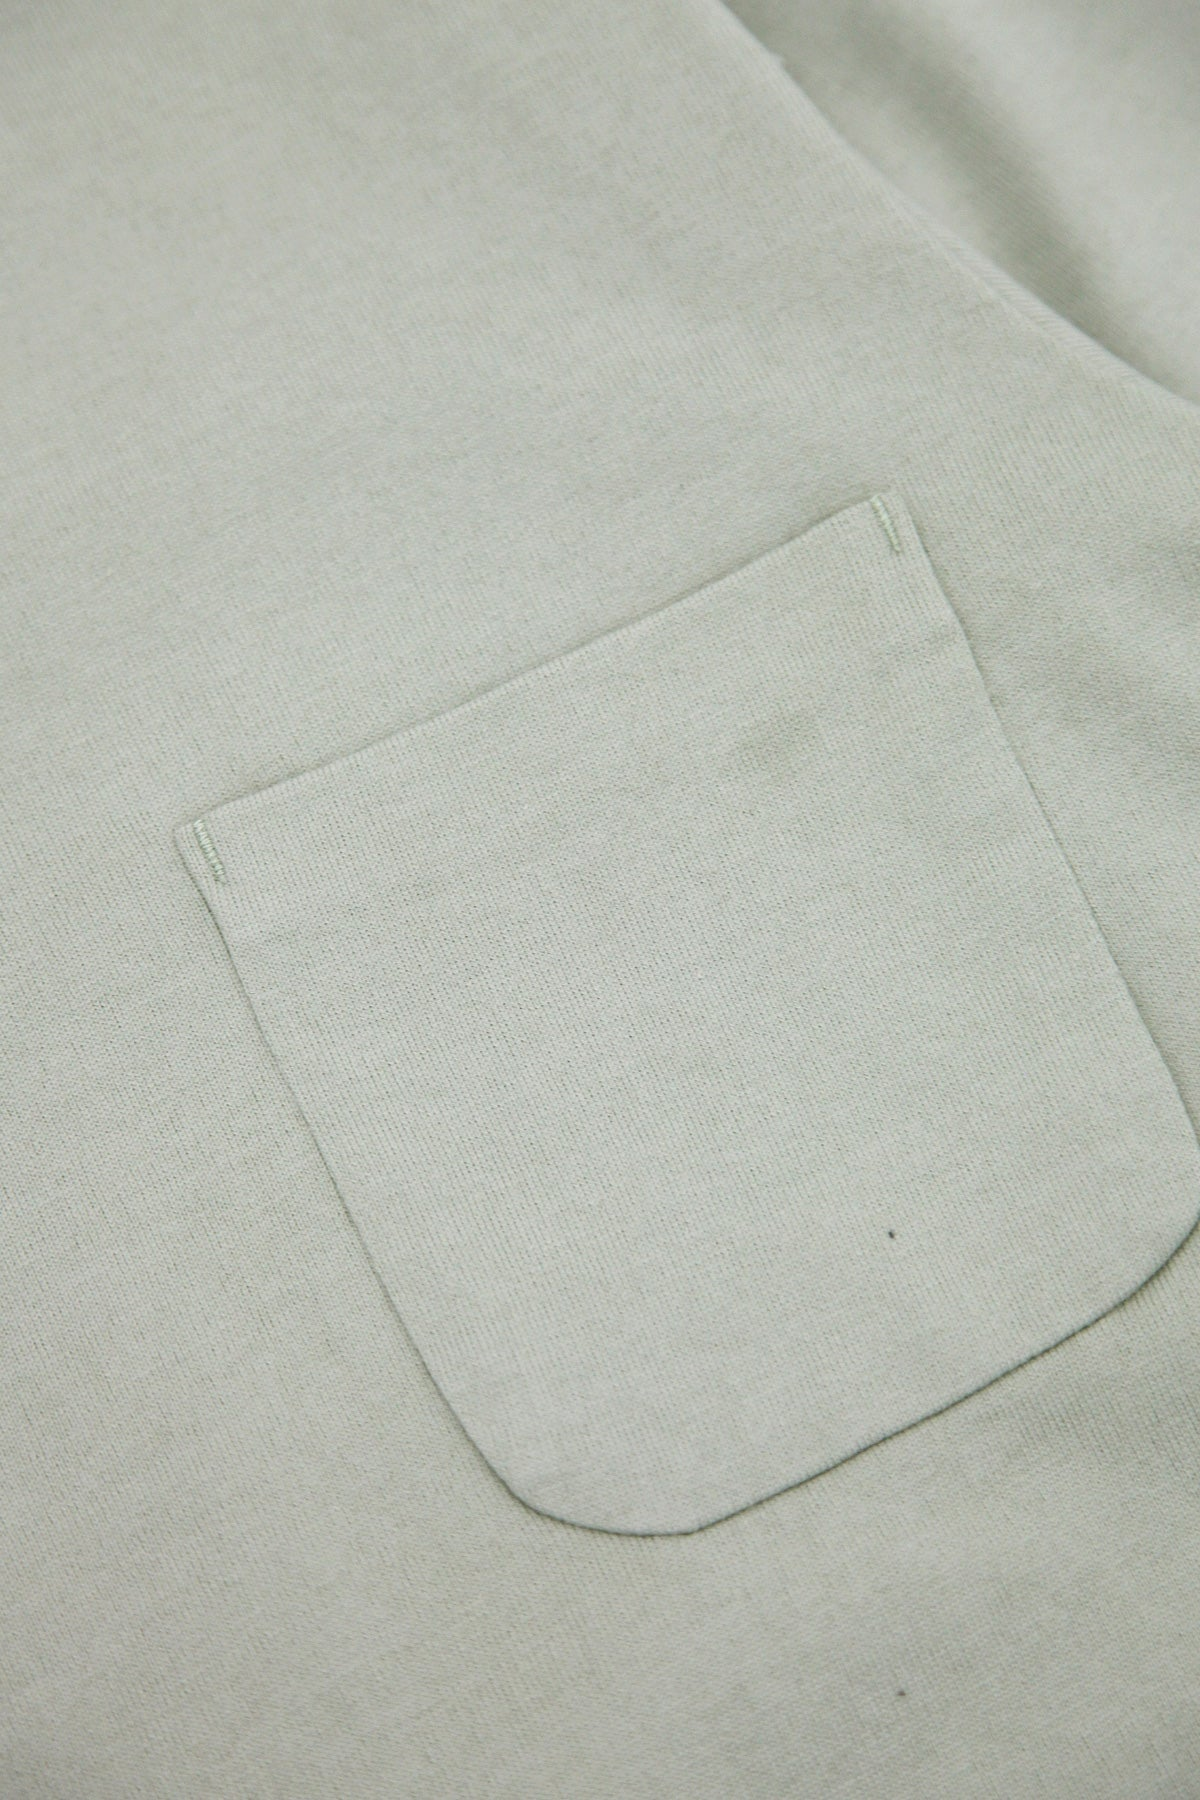 nanamica - Long Sleeve Pocket Tee - Mint - Canoe Club